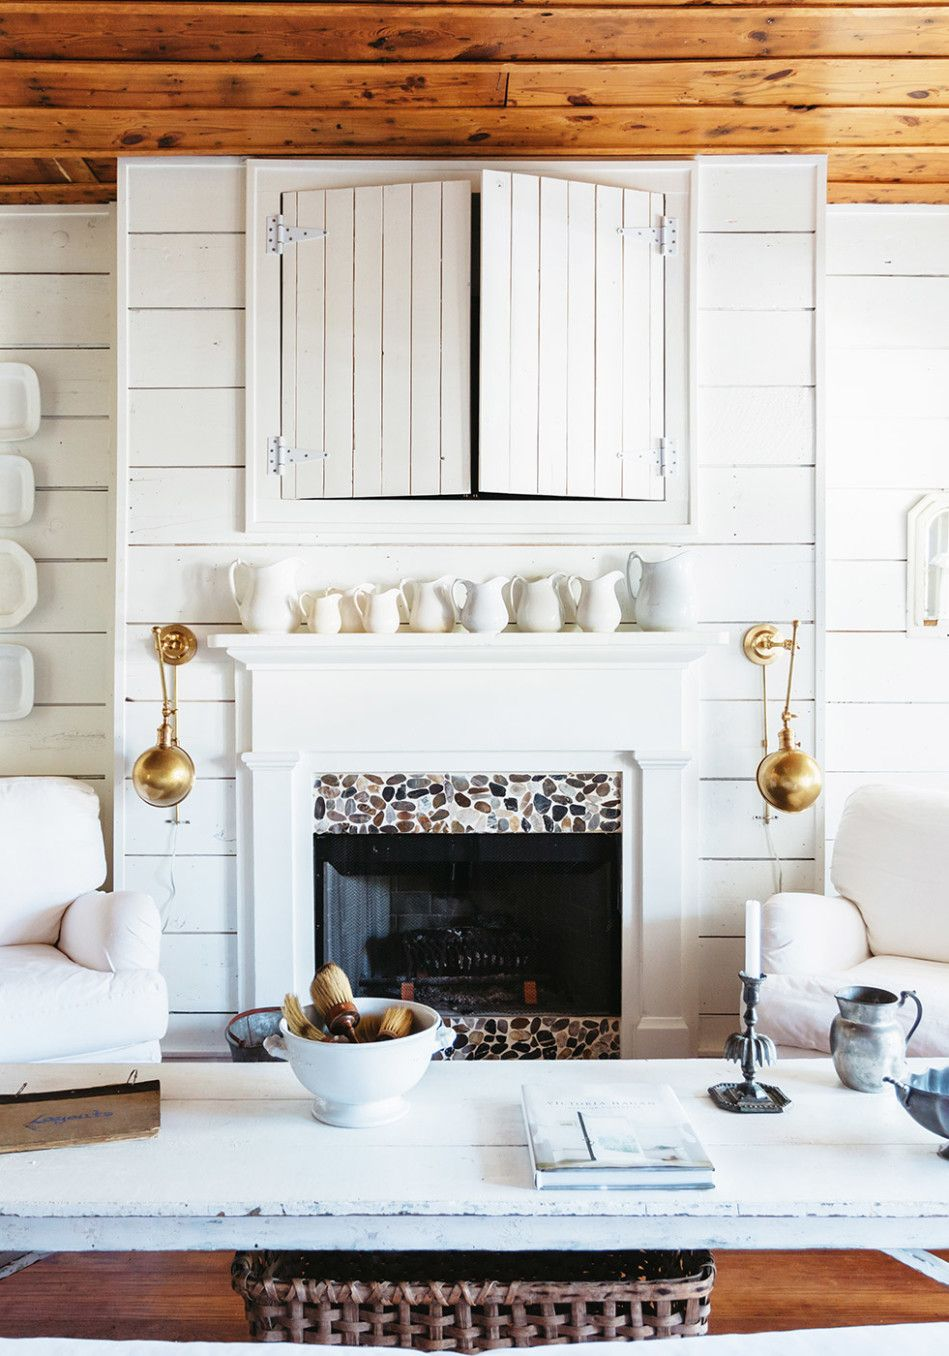 The 7 Best White Paint Colors for Your Home | Simple colors, White ...